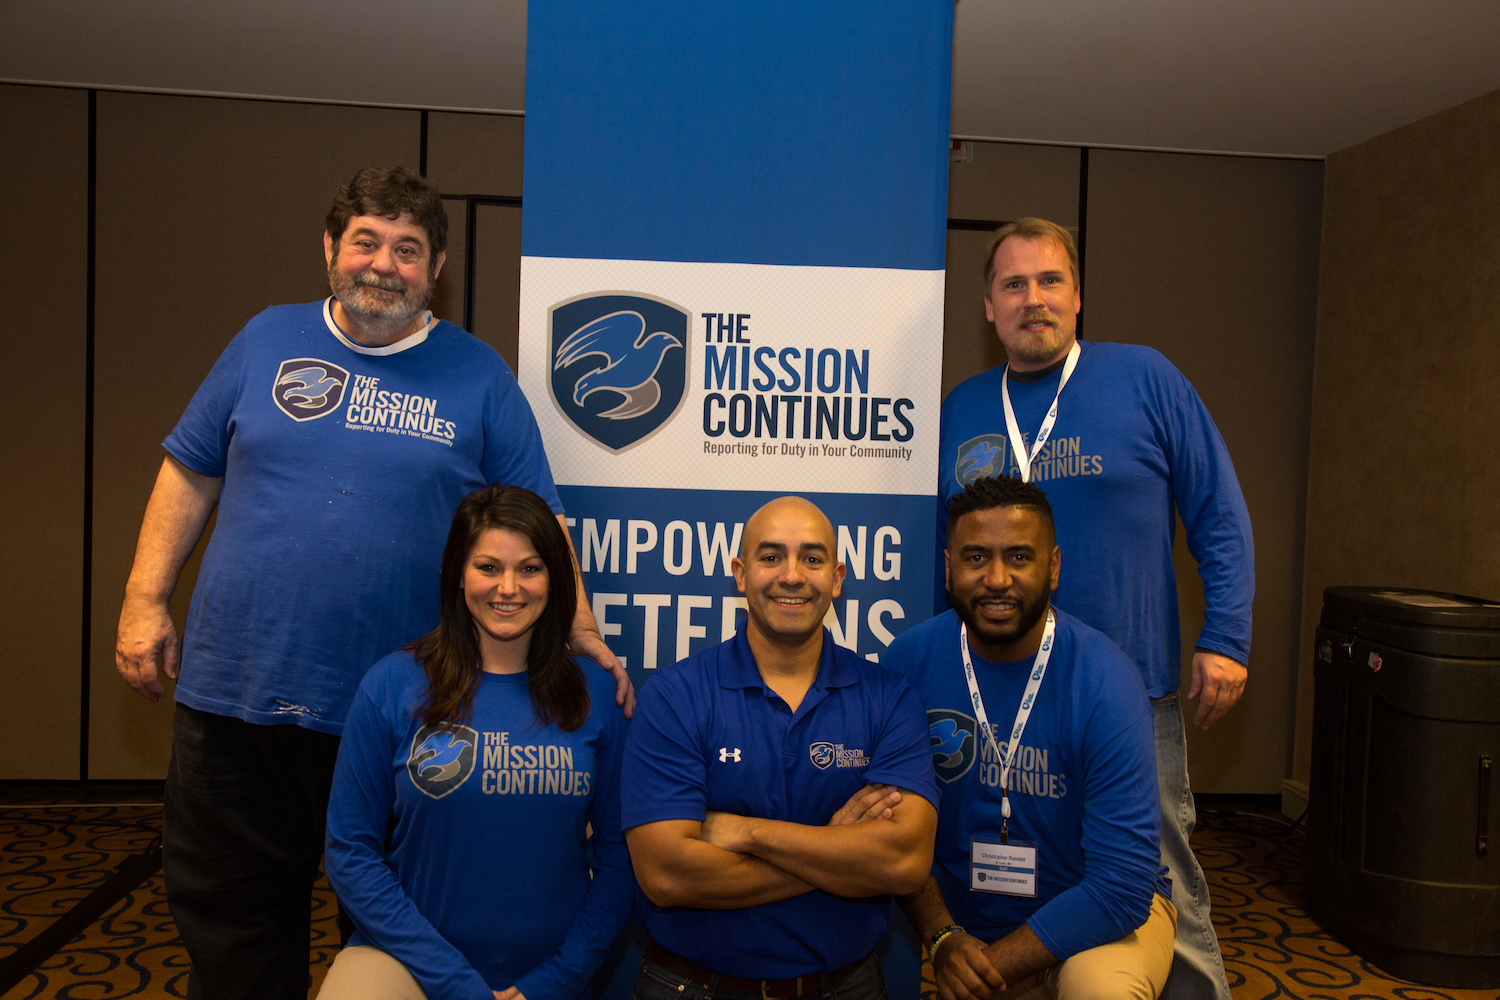 How Did You Come to Work at The Mission Continues?